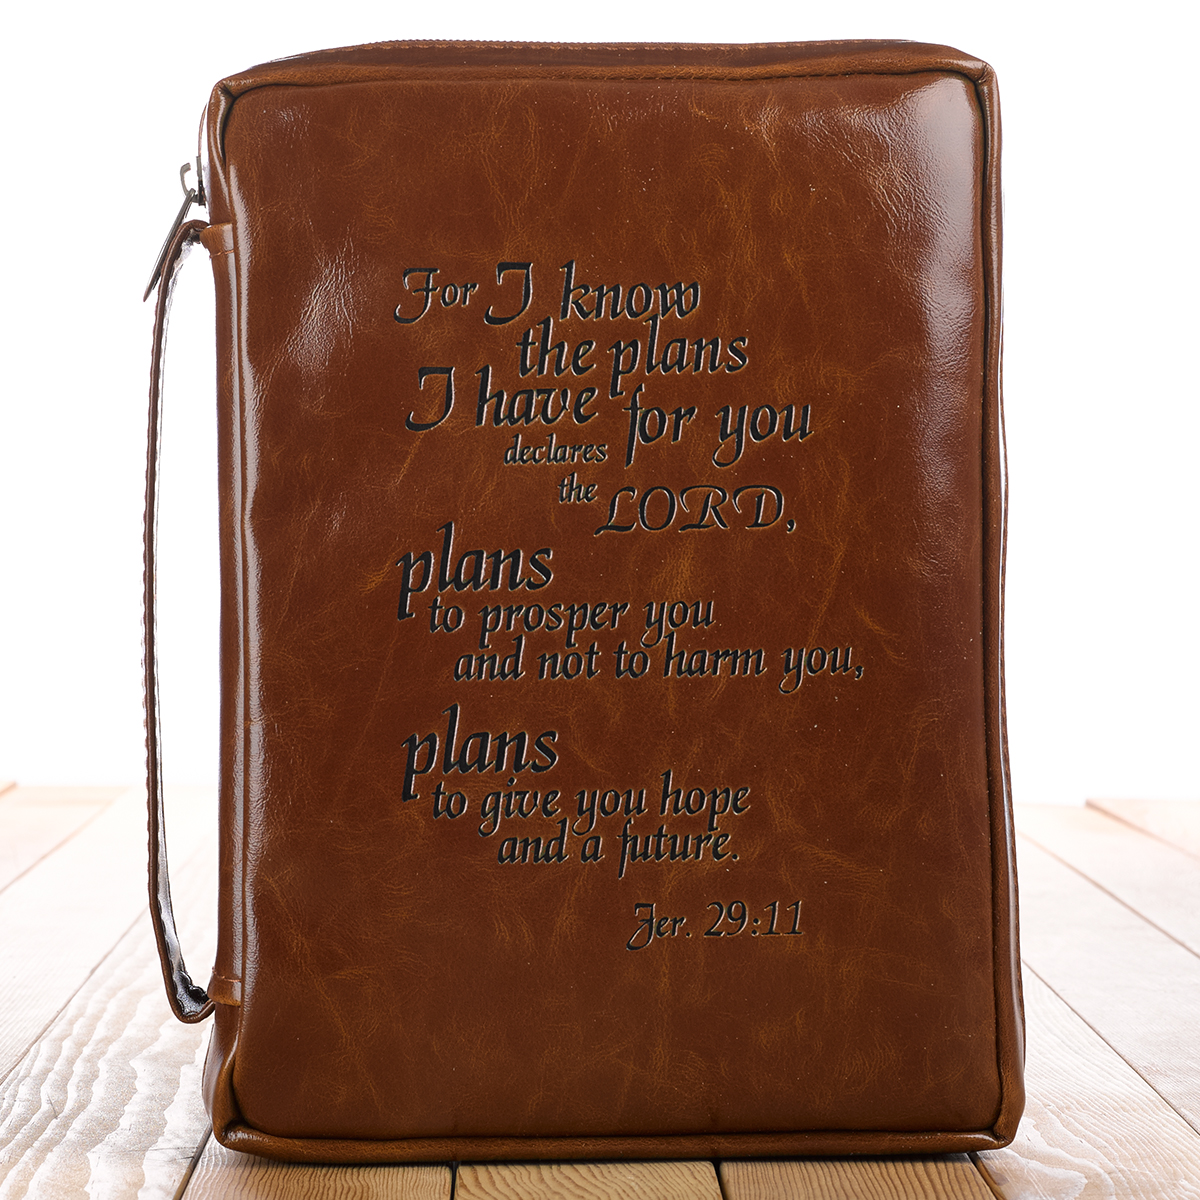 I know the Plans in vintage brown Jeremiah 29:11 Bible Cover, Size Medium